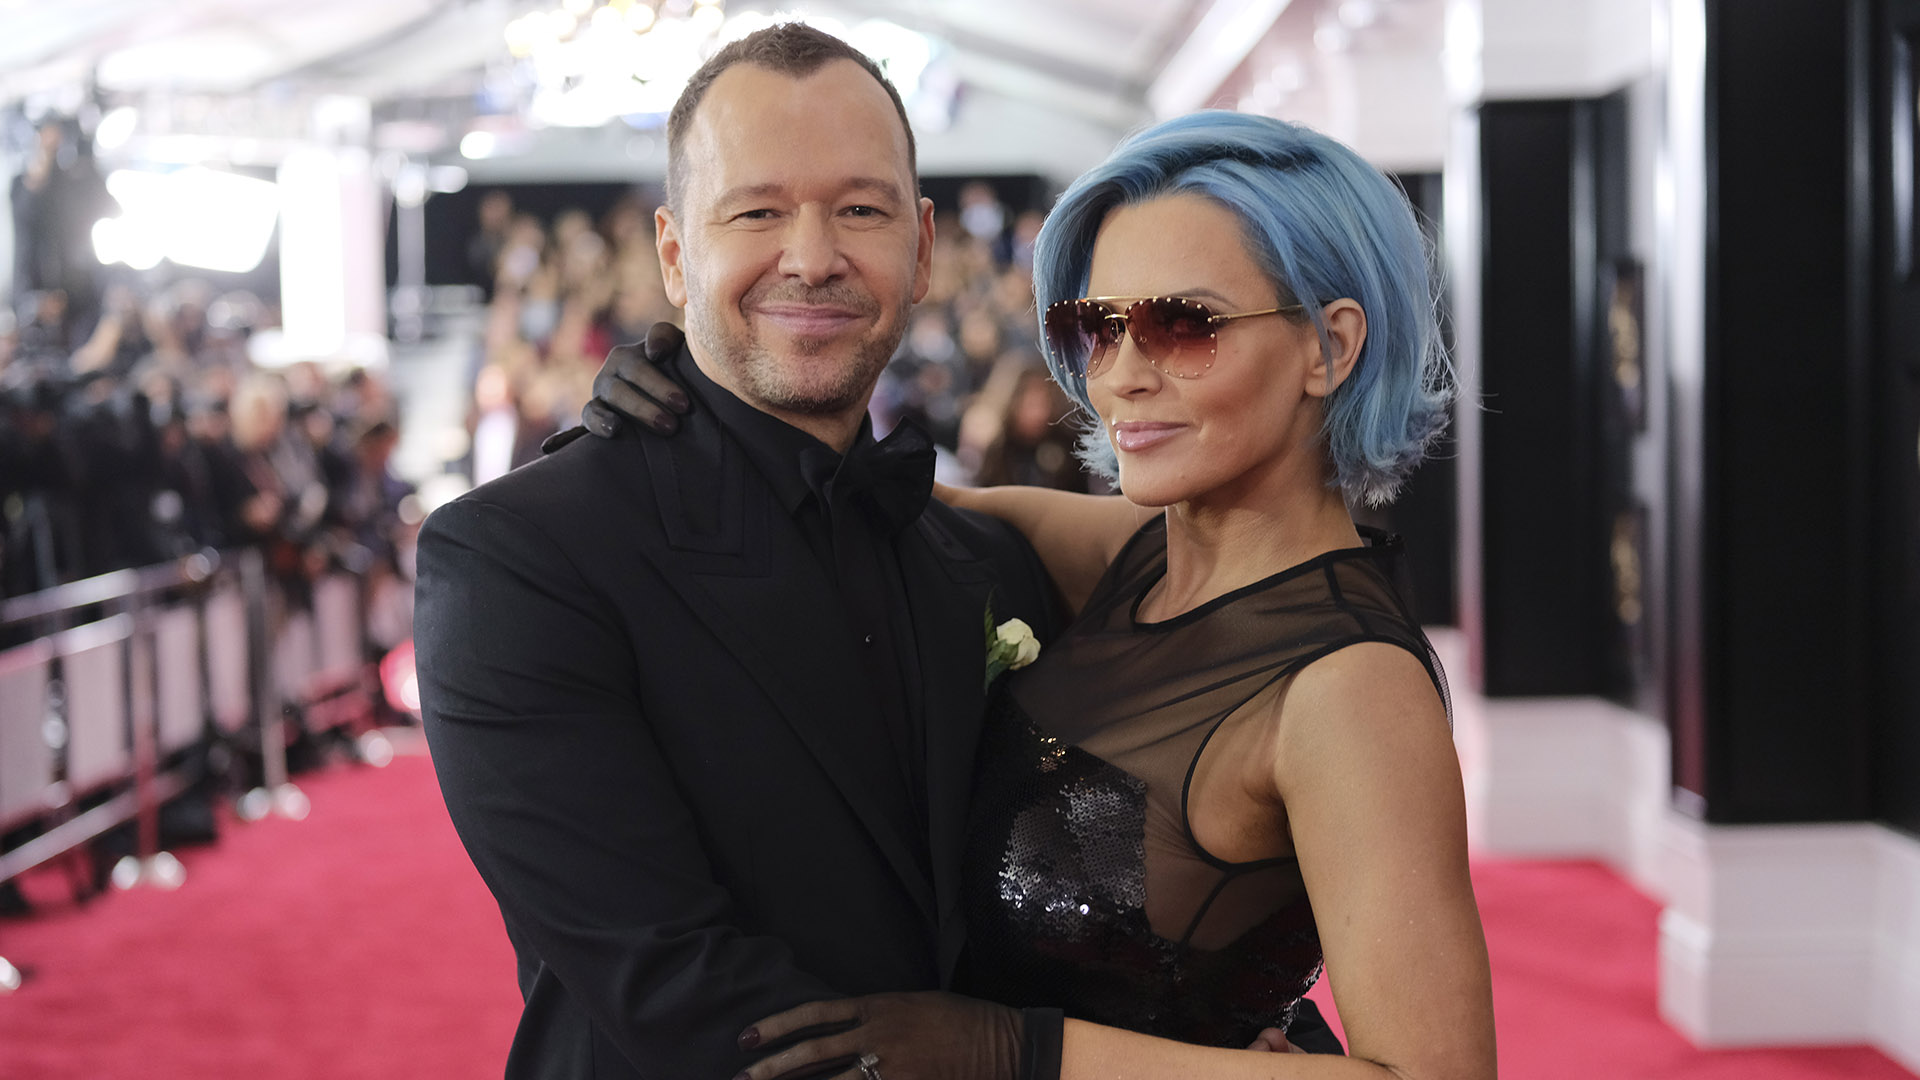 Blue Bloods star Donnie Wahlberg can't keep his hands off wife Jenny McCarthy, who debuts a new blue 'do on the red carpet.